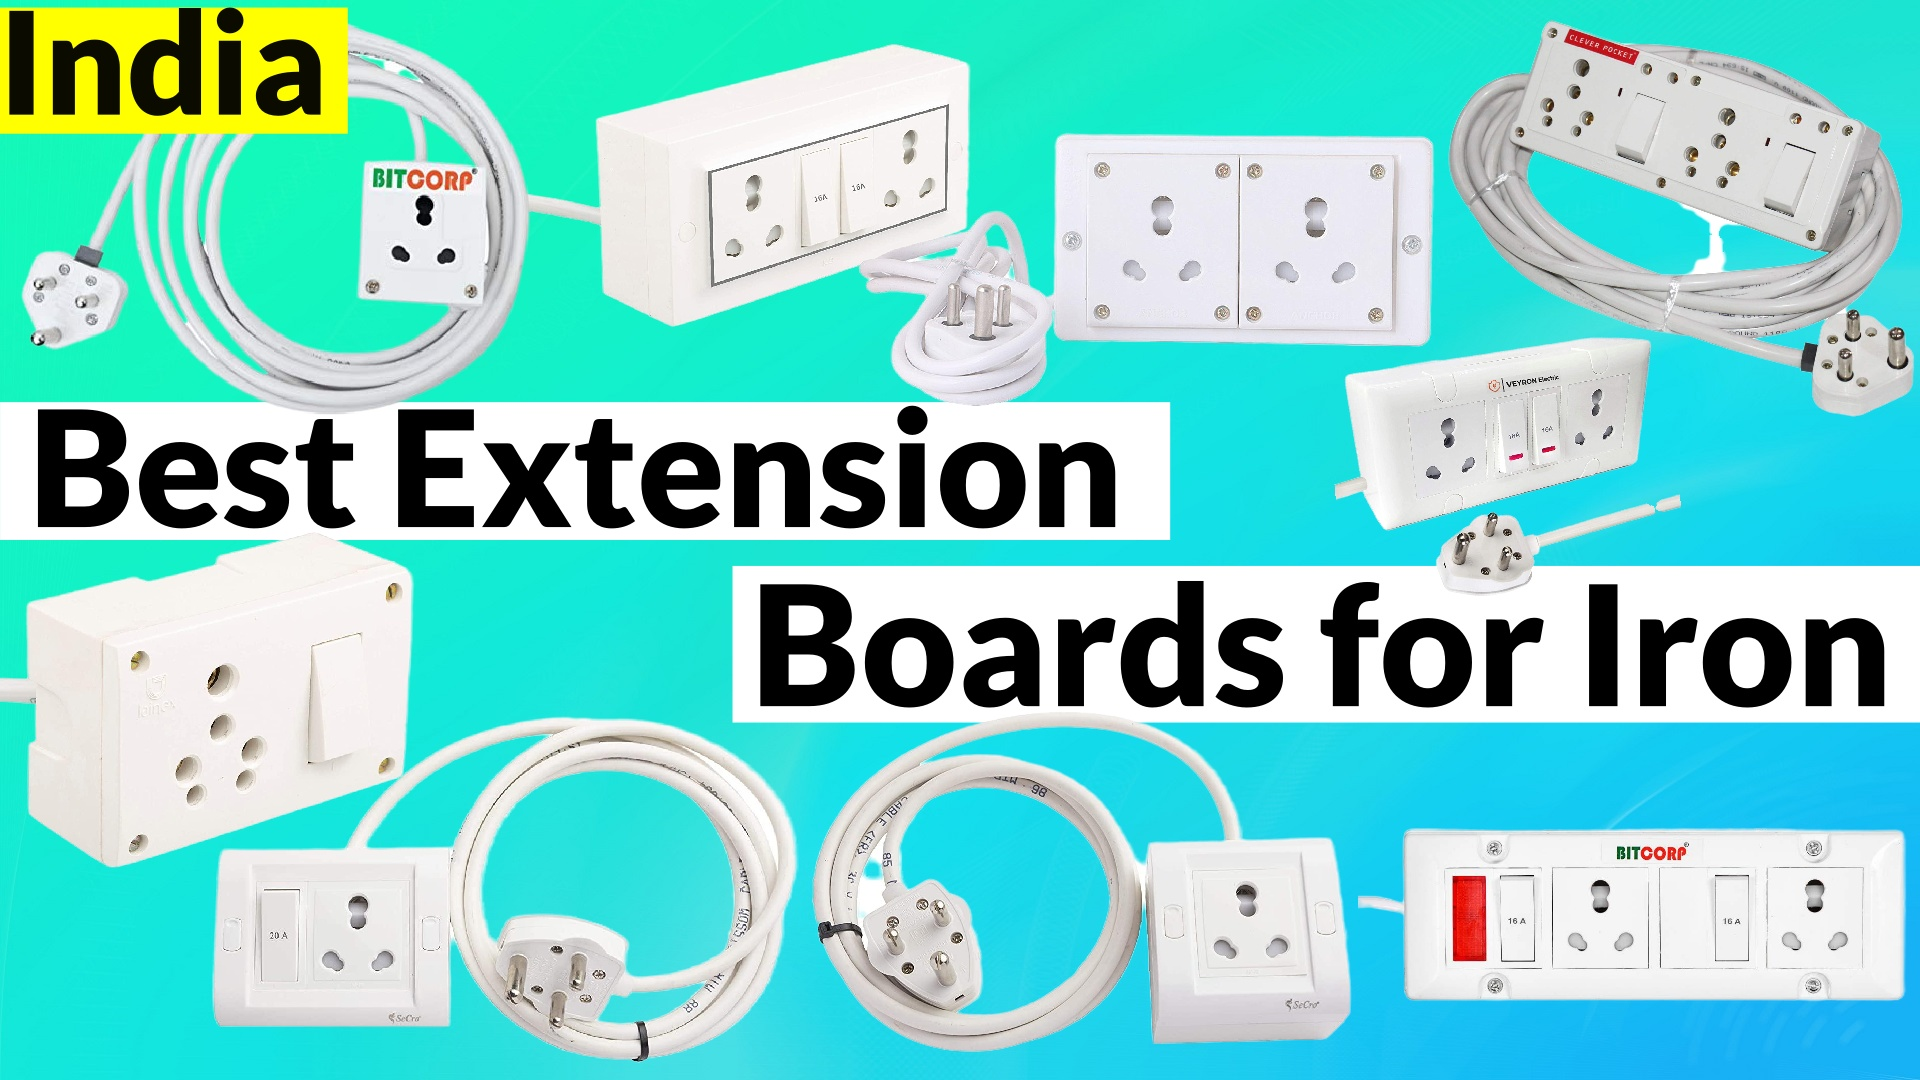 Best extension boards for iron